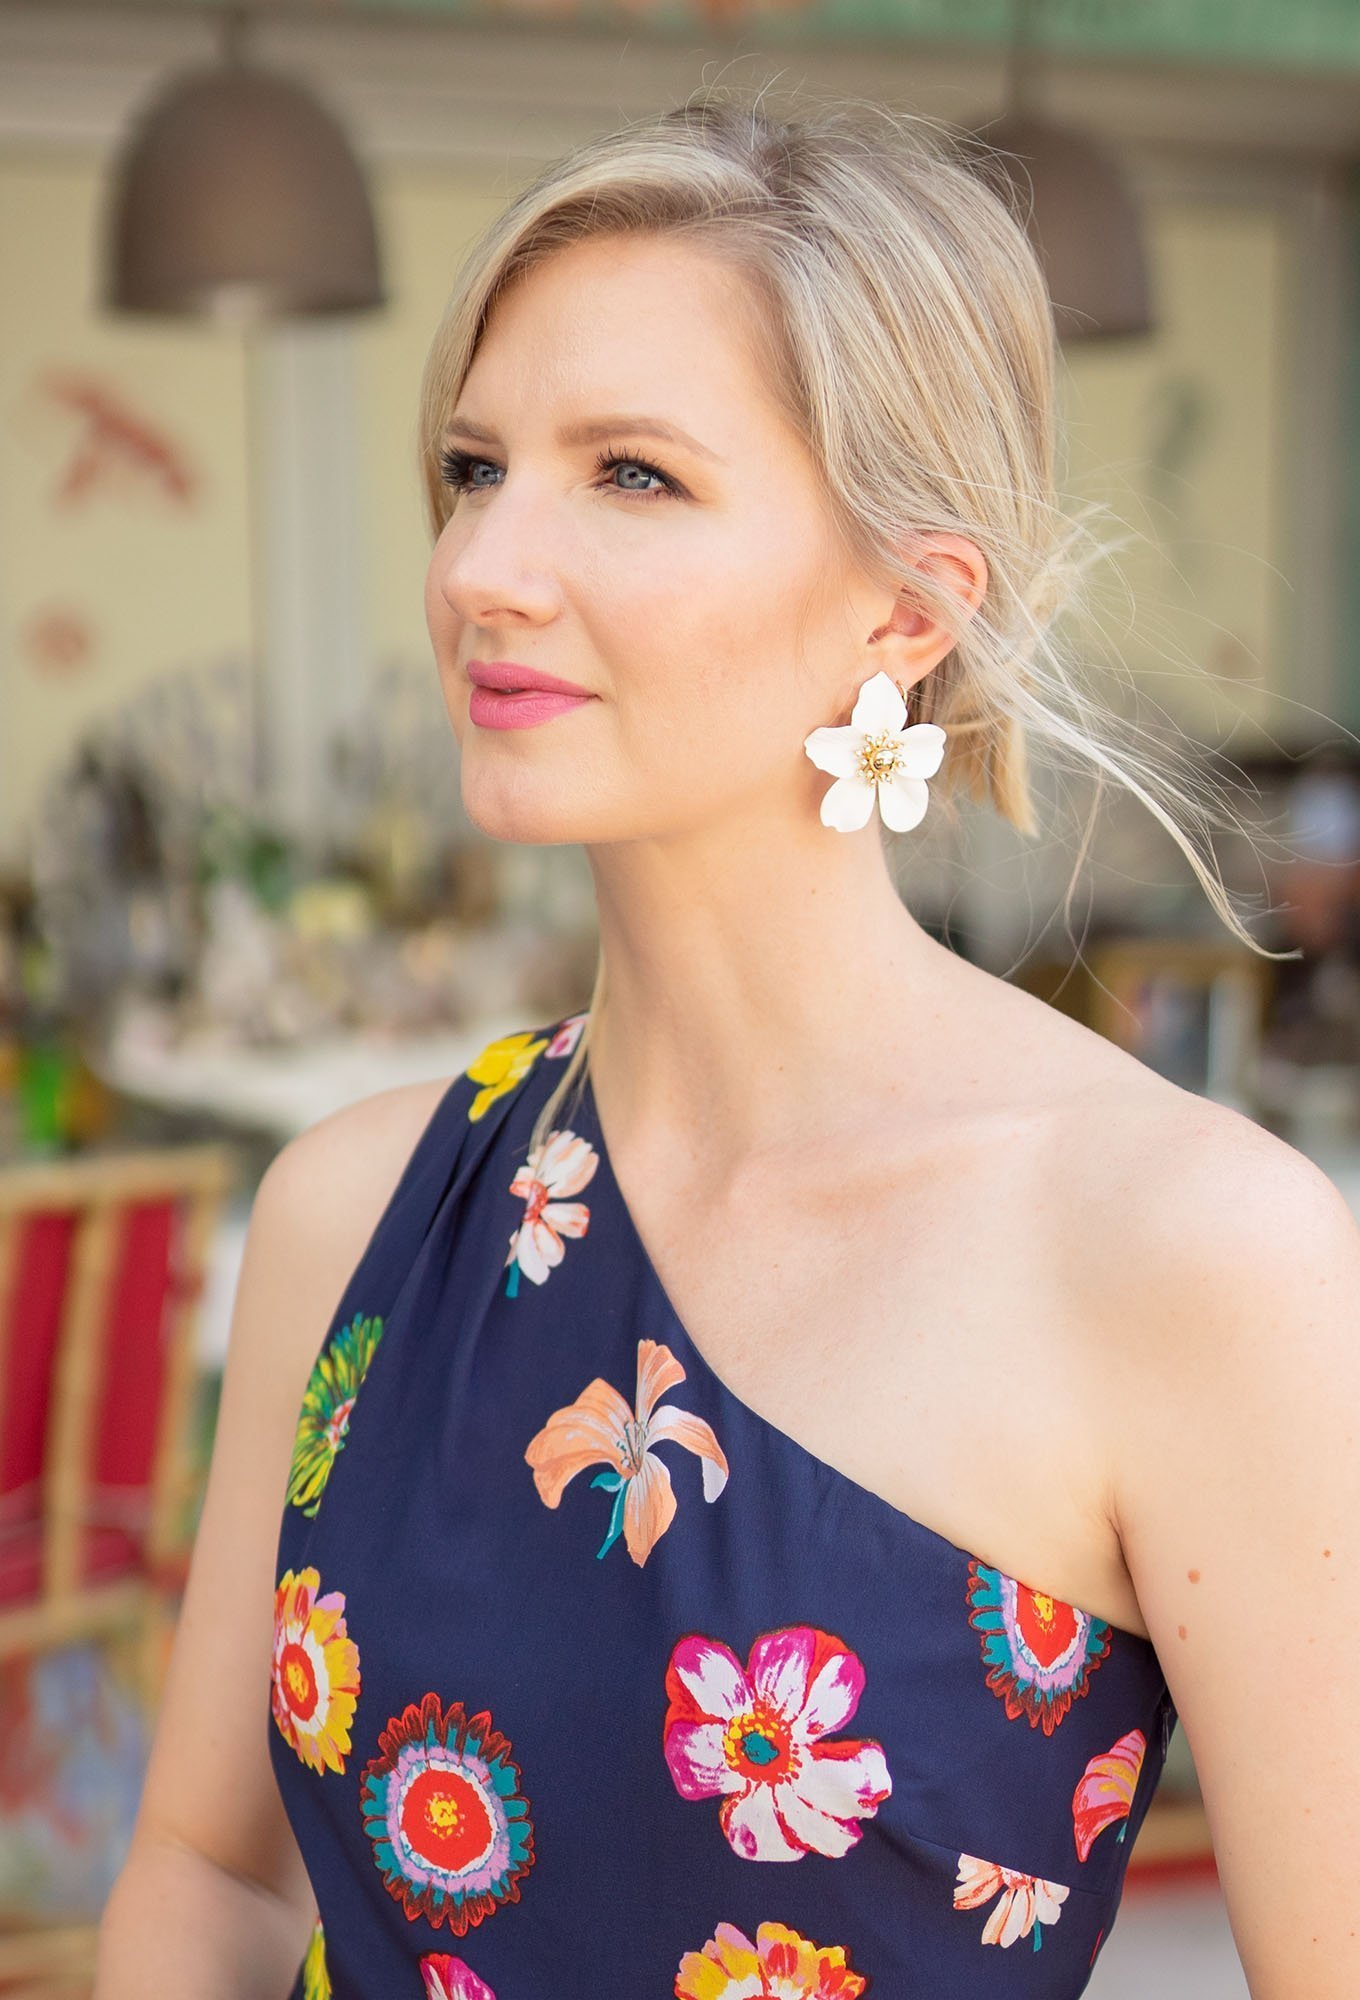 Ashley Brooke at the Faena Hotel in Miami wearing floral one shoulder dress